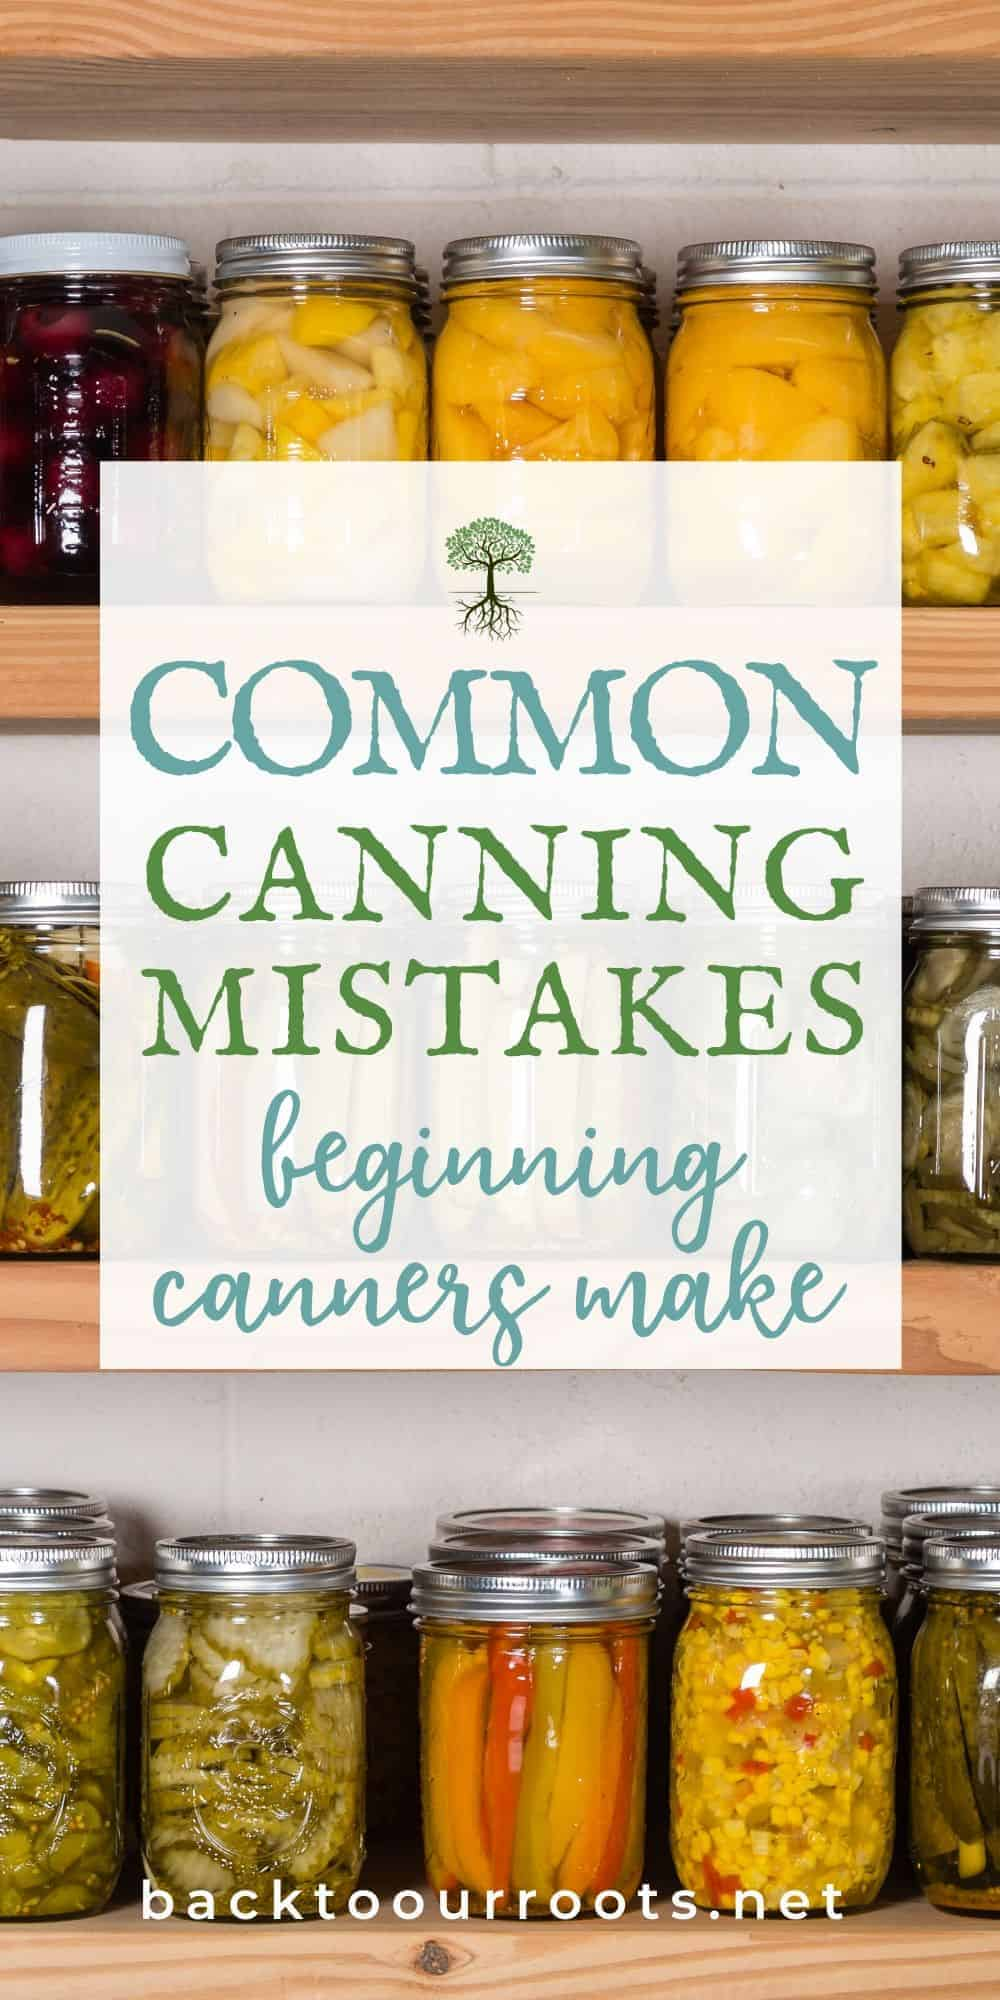 Common Canning Mistakes